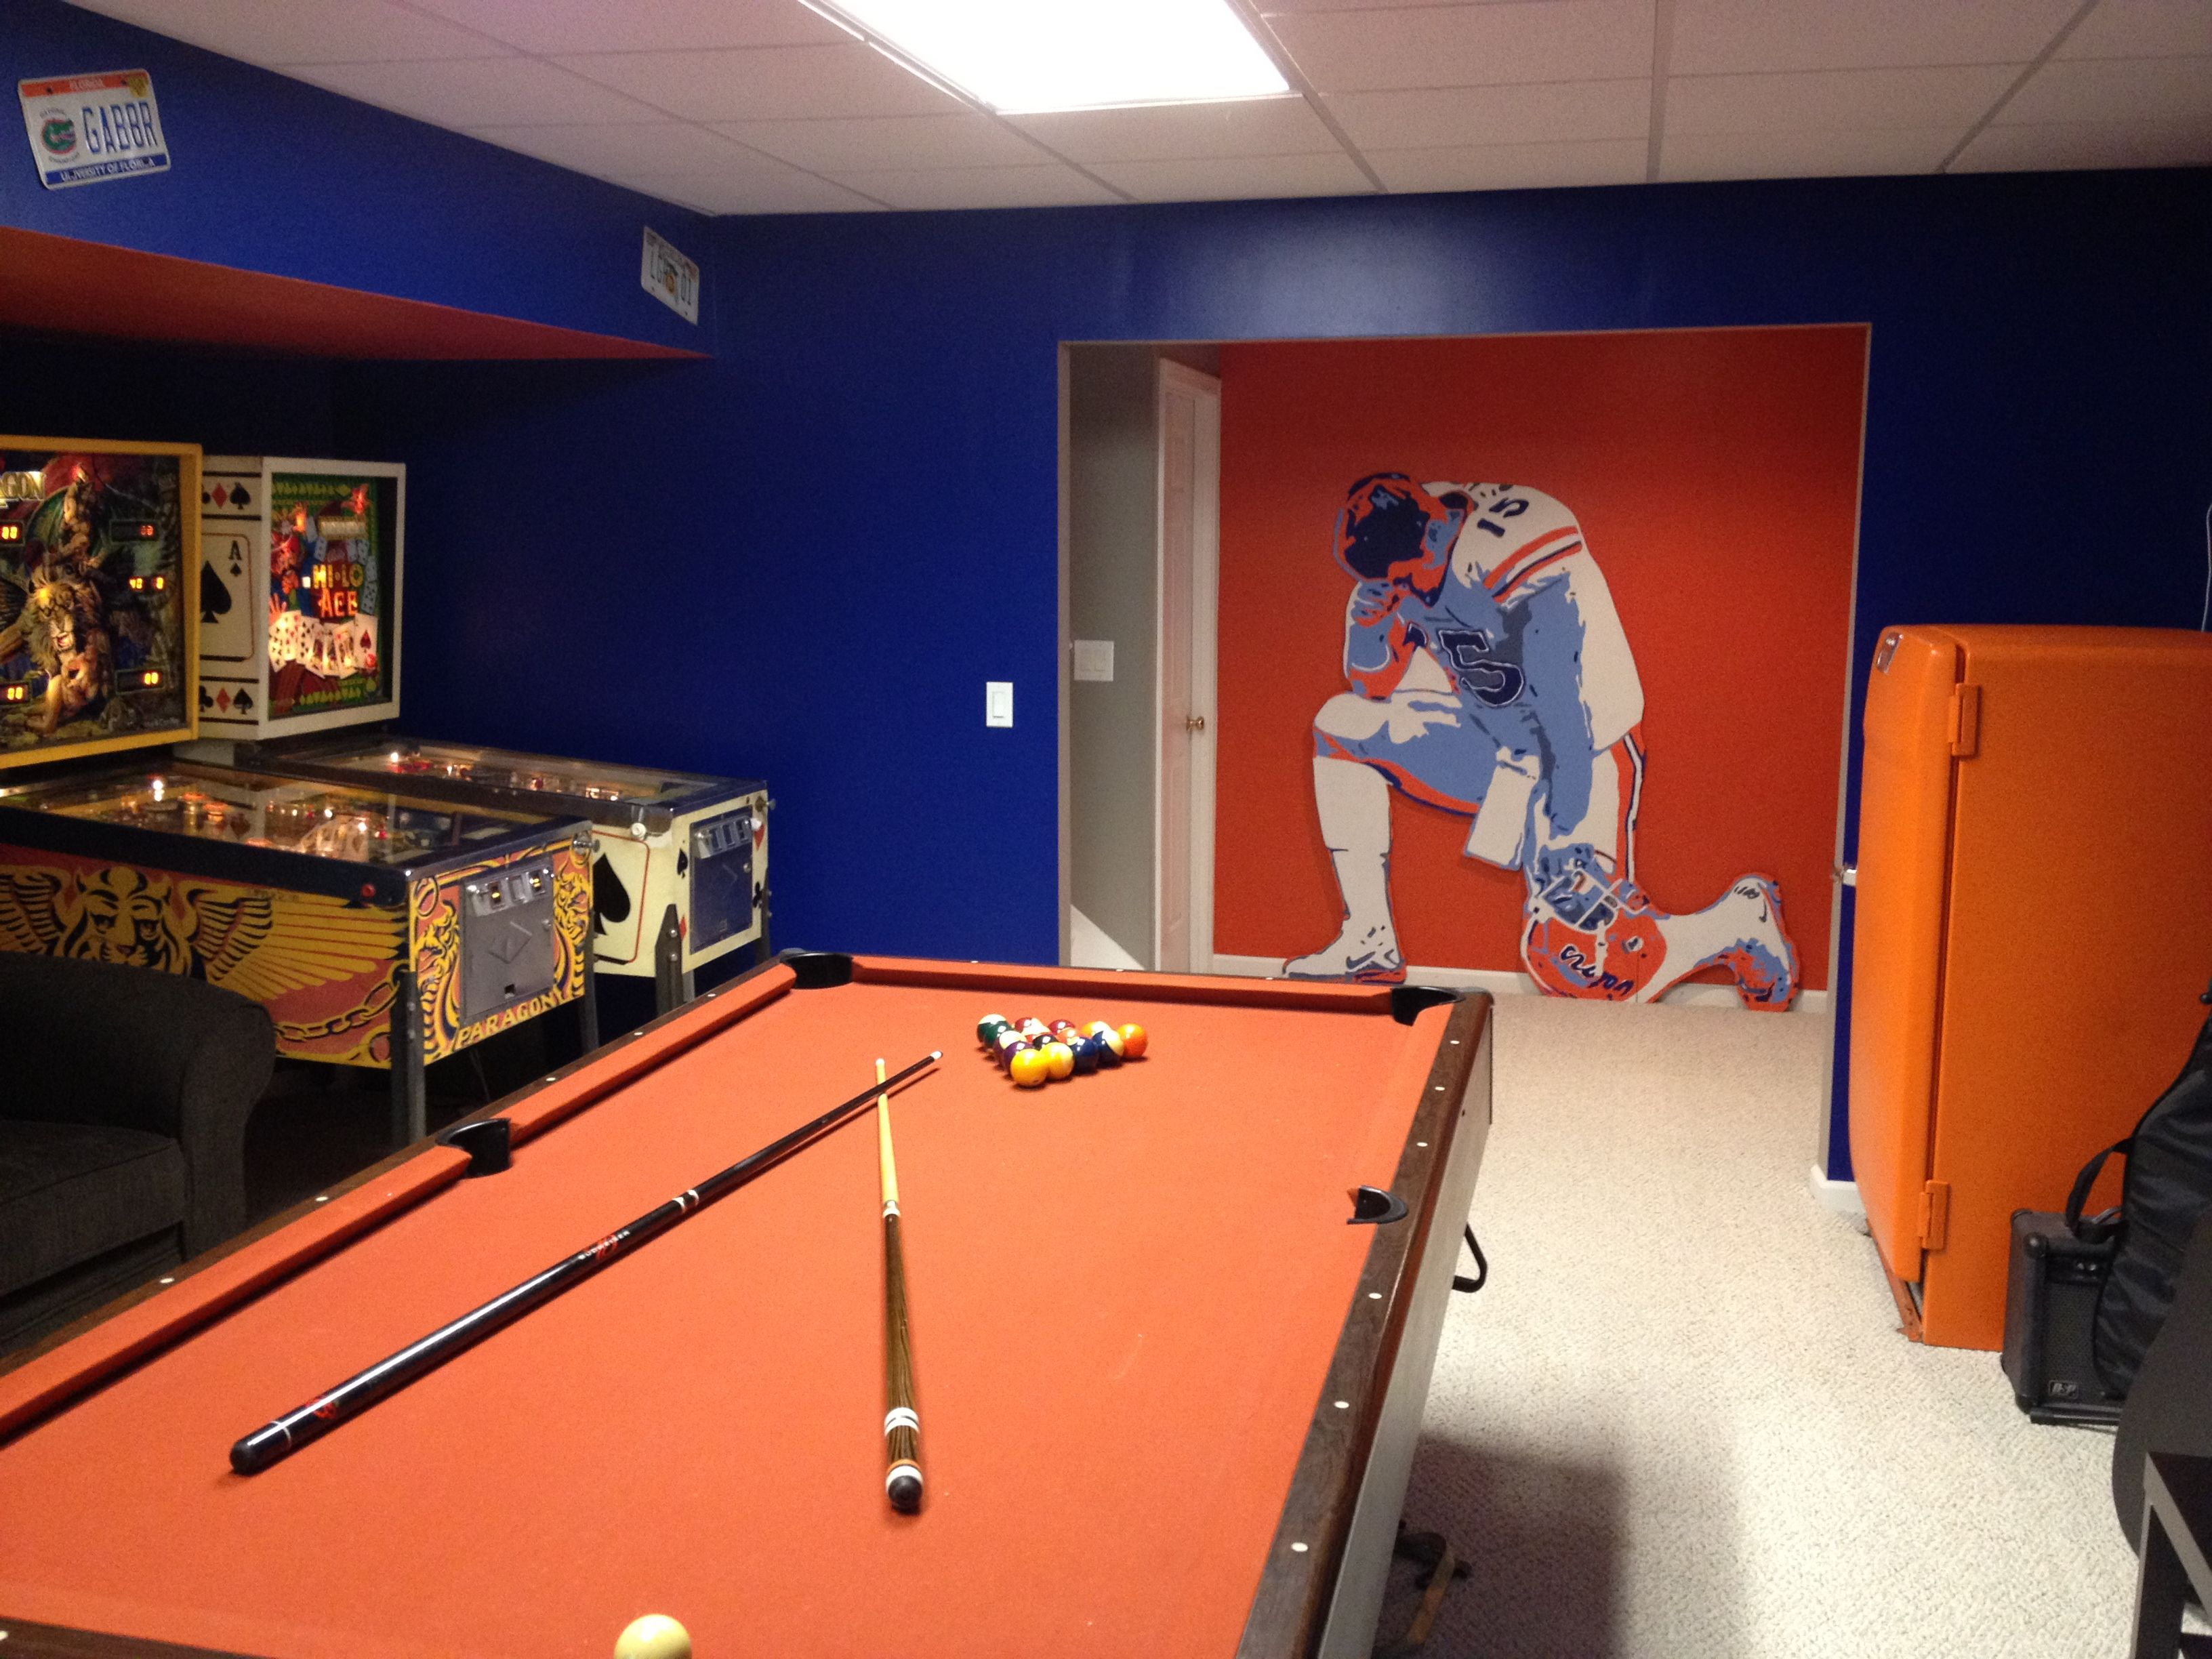 My Man Cave, The Swamp, The Gator Den. Florida Gator Themed, Complete